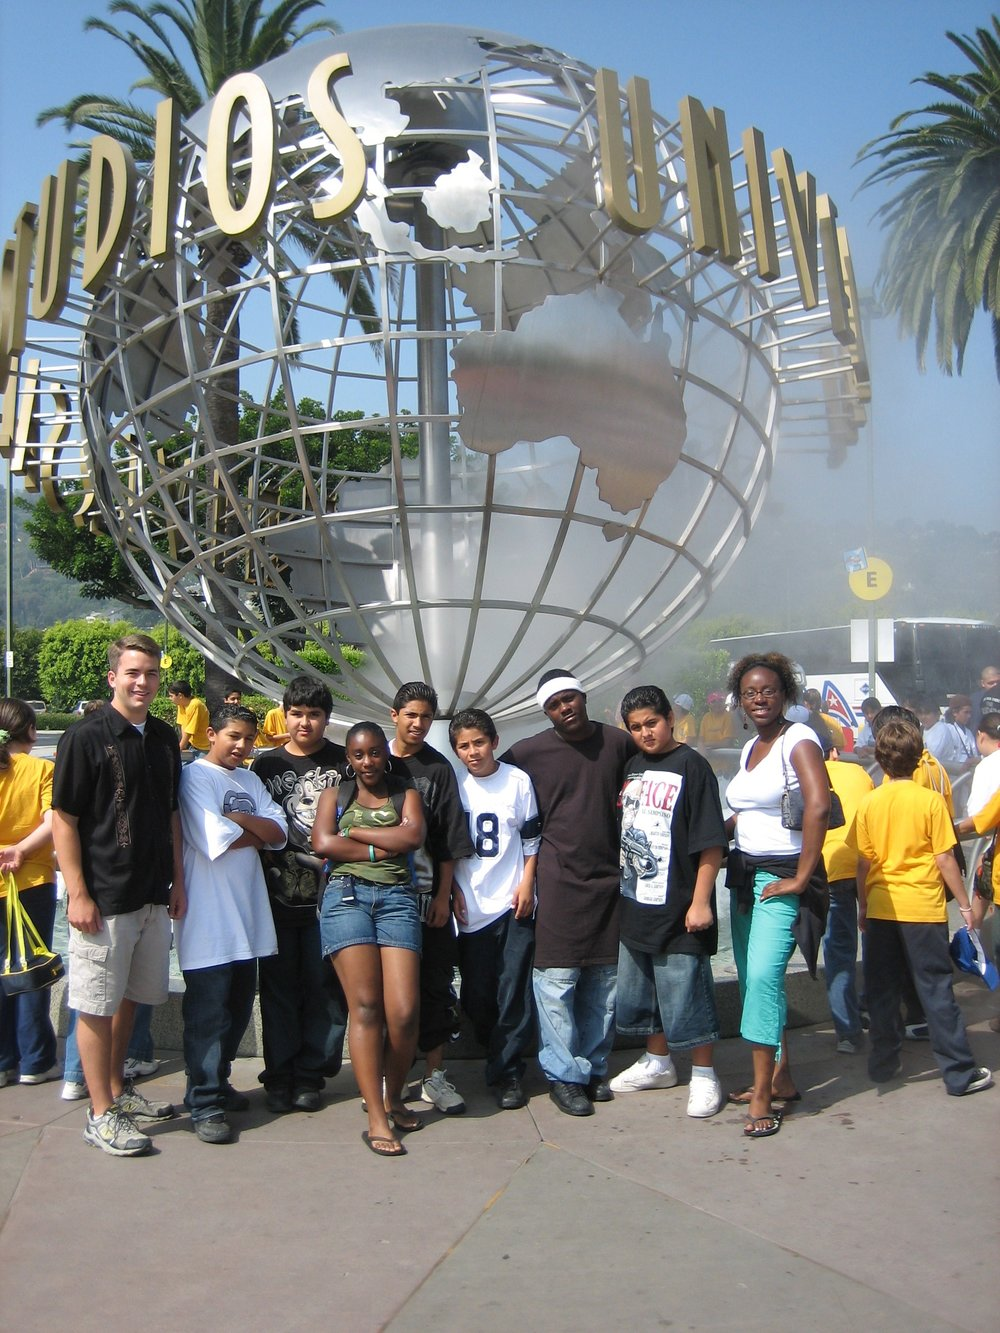 Outting - Here Jennifer and a large of students take a picture during a BCM outing to Universal Studios. (Picture taken in 2006)